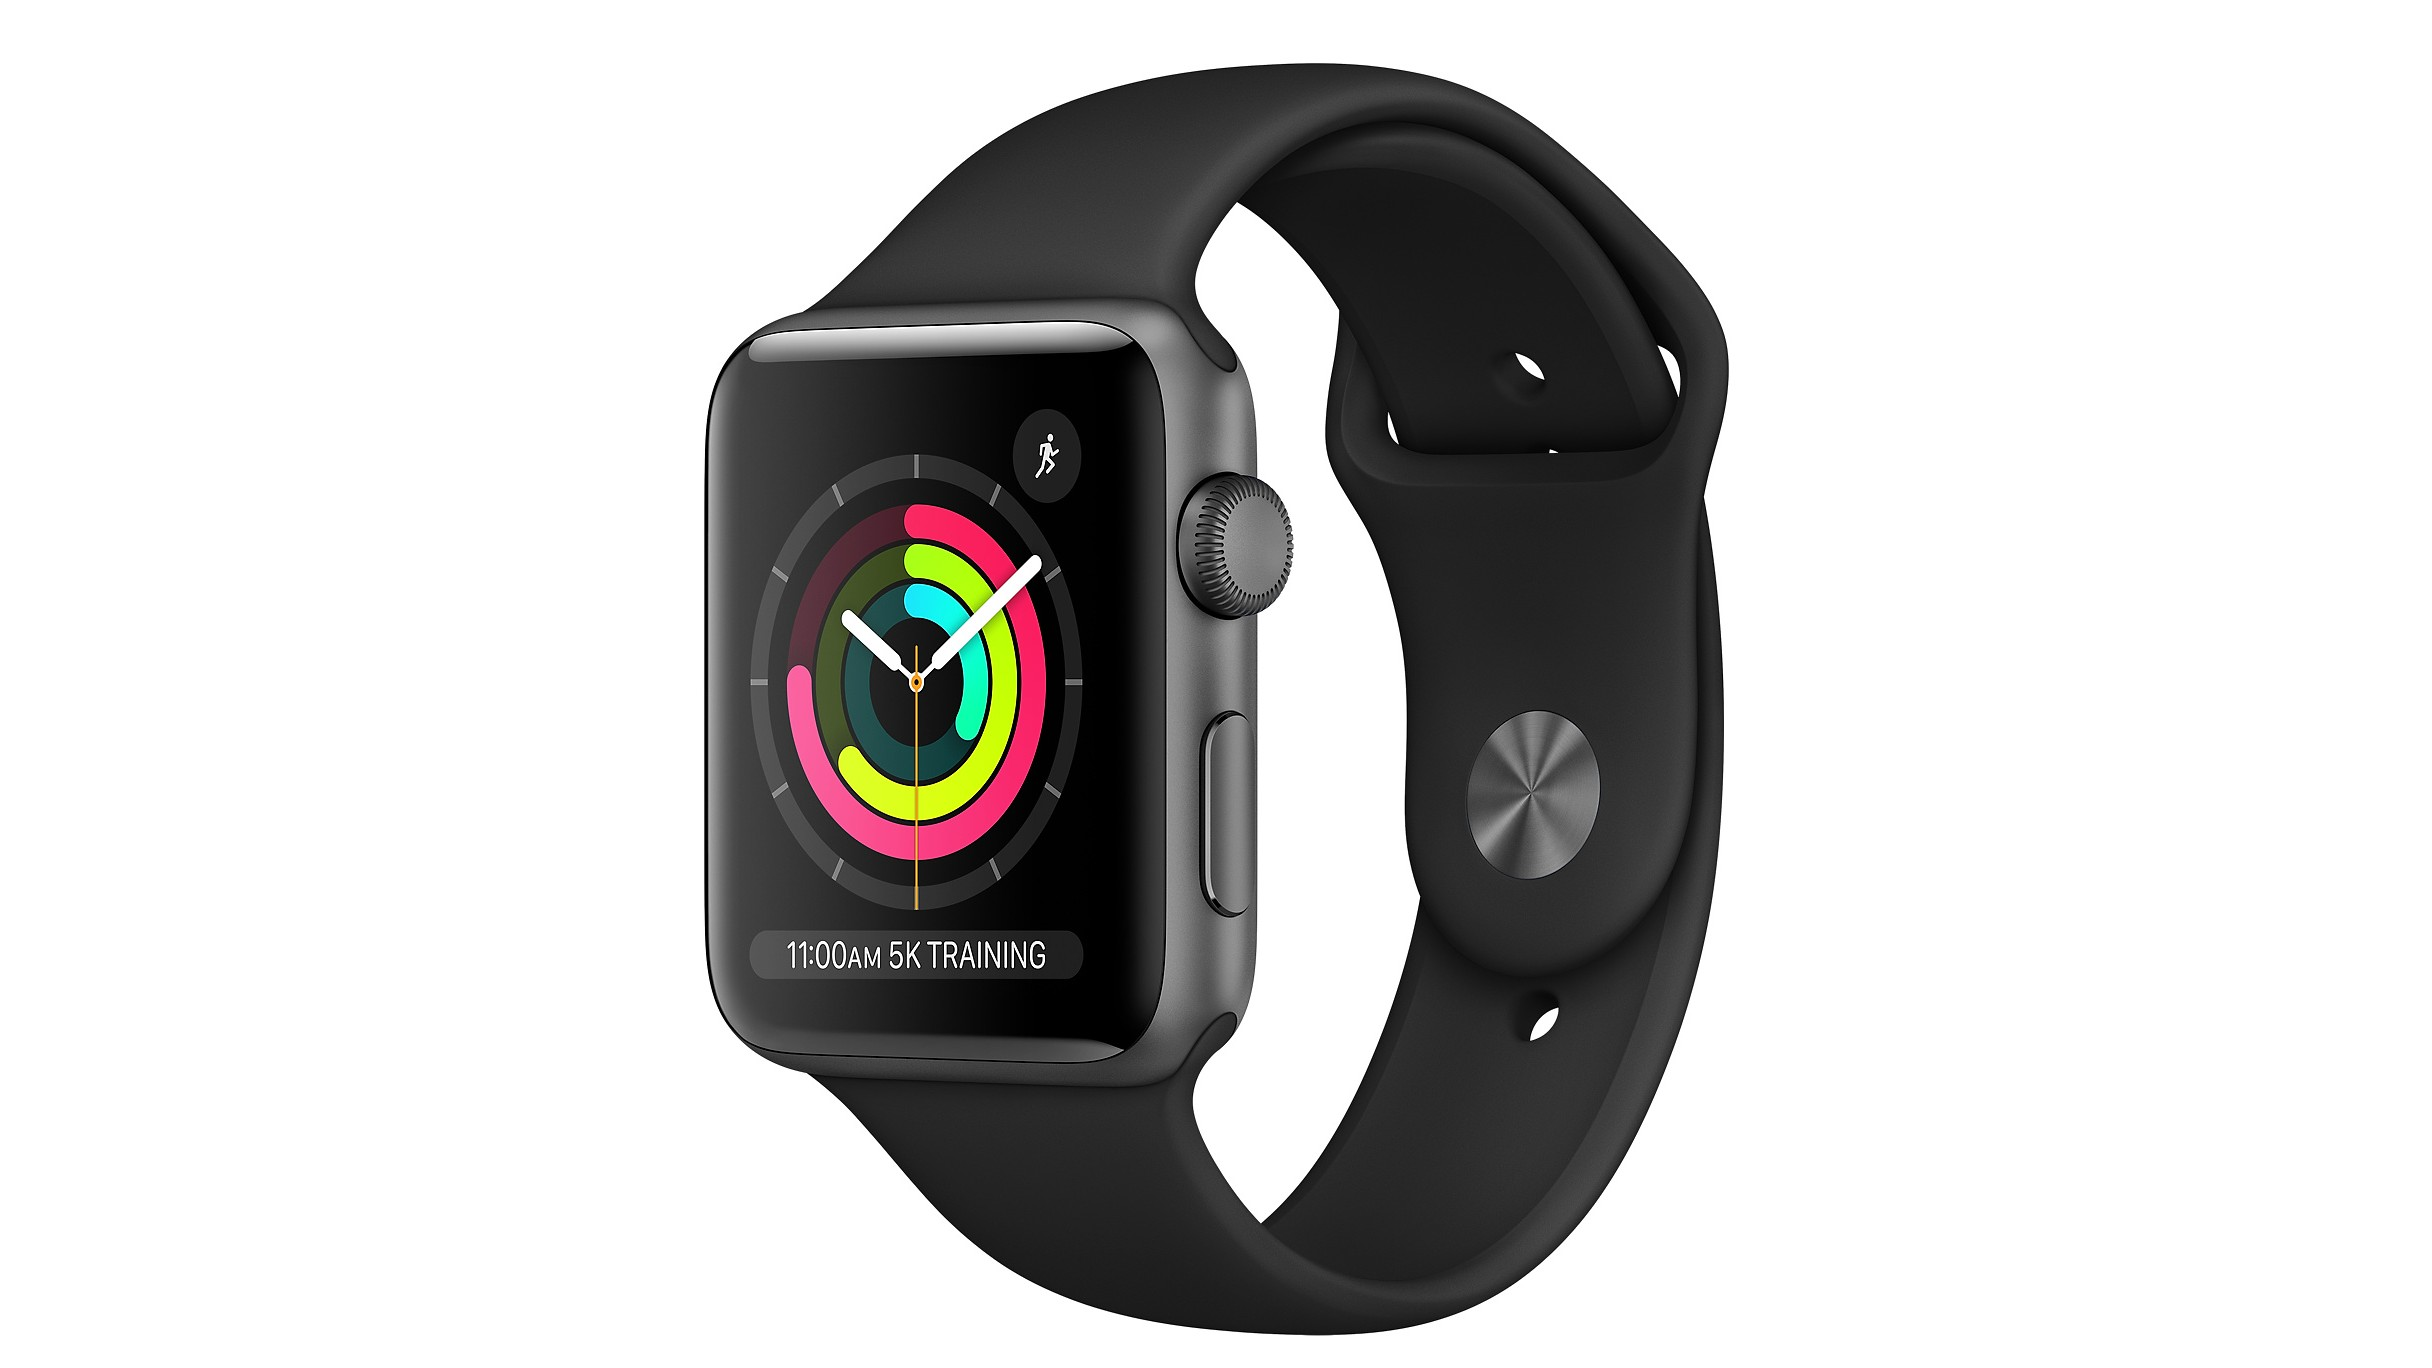 apple watch deals: apple watch 3